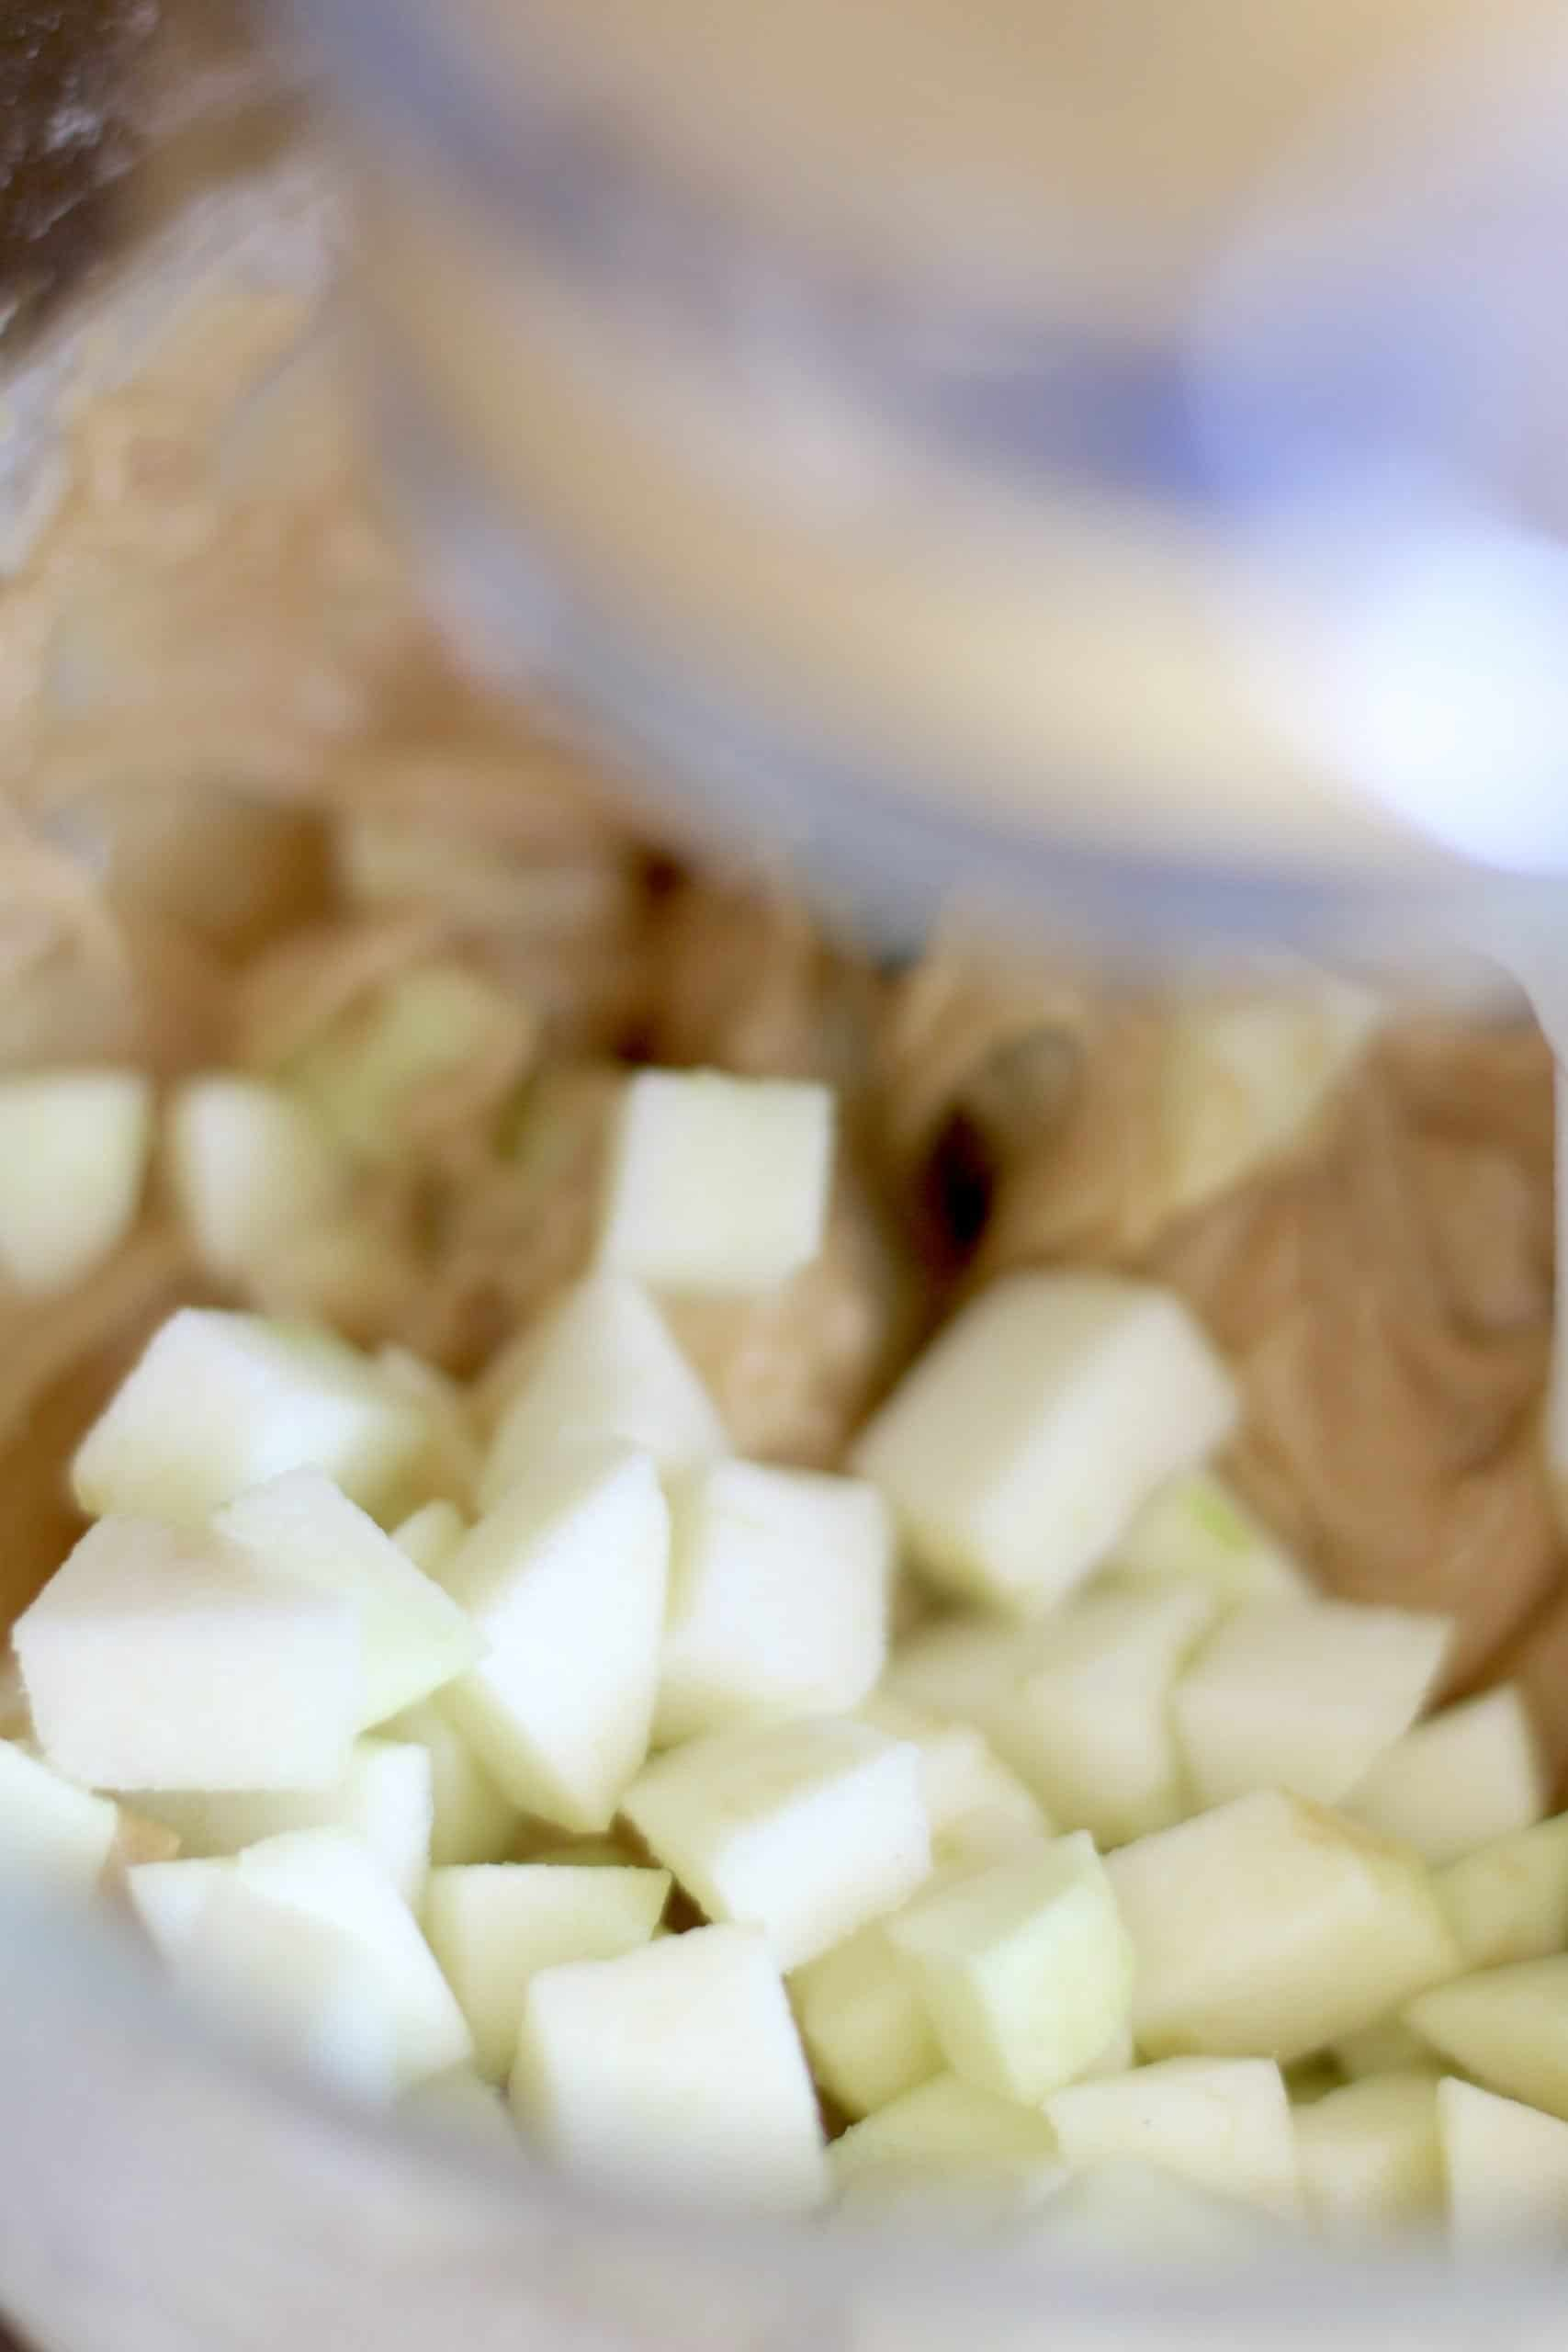 chopped Granny Smith added to brown sugar batter in a clear bowl.